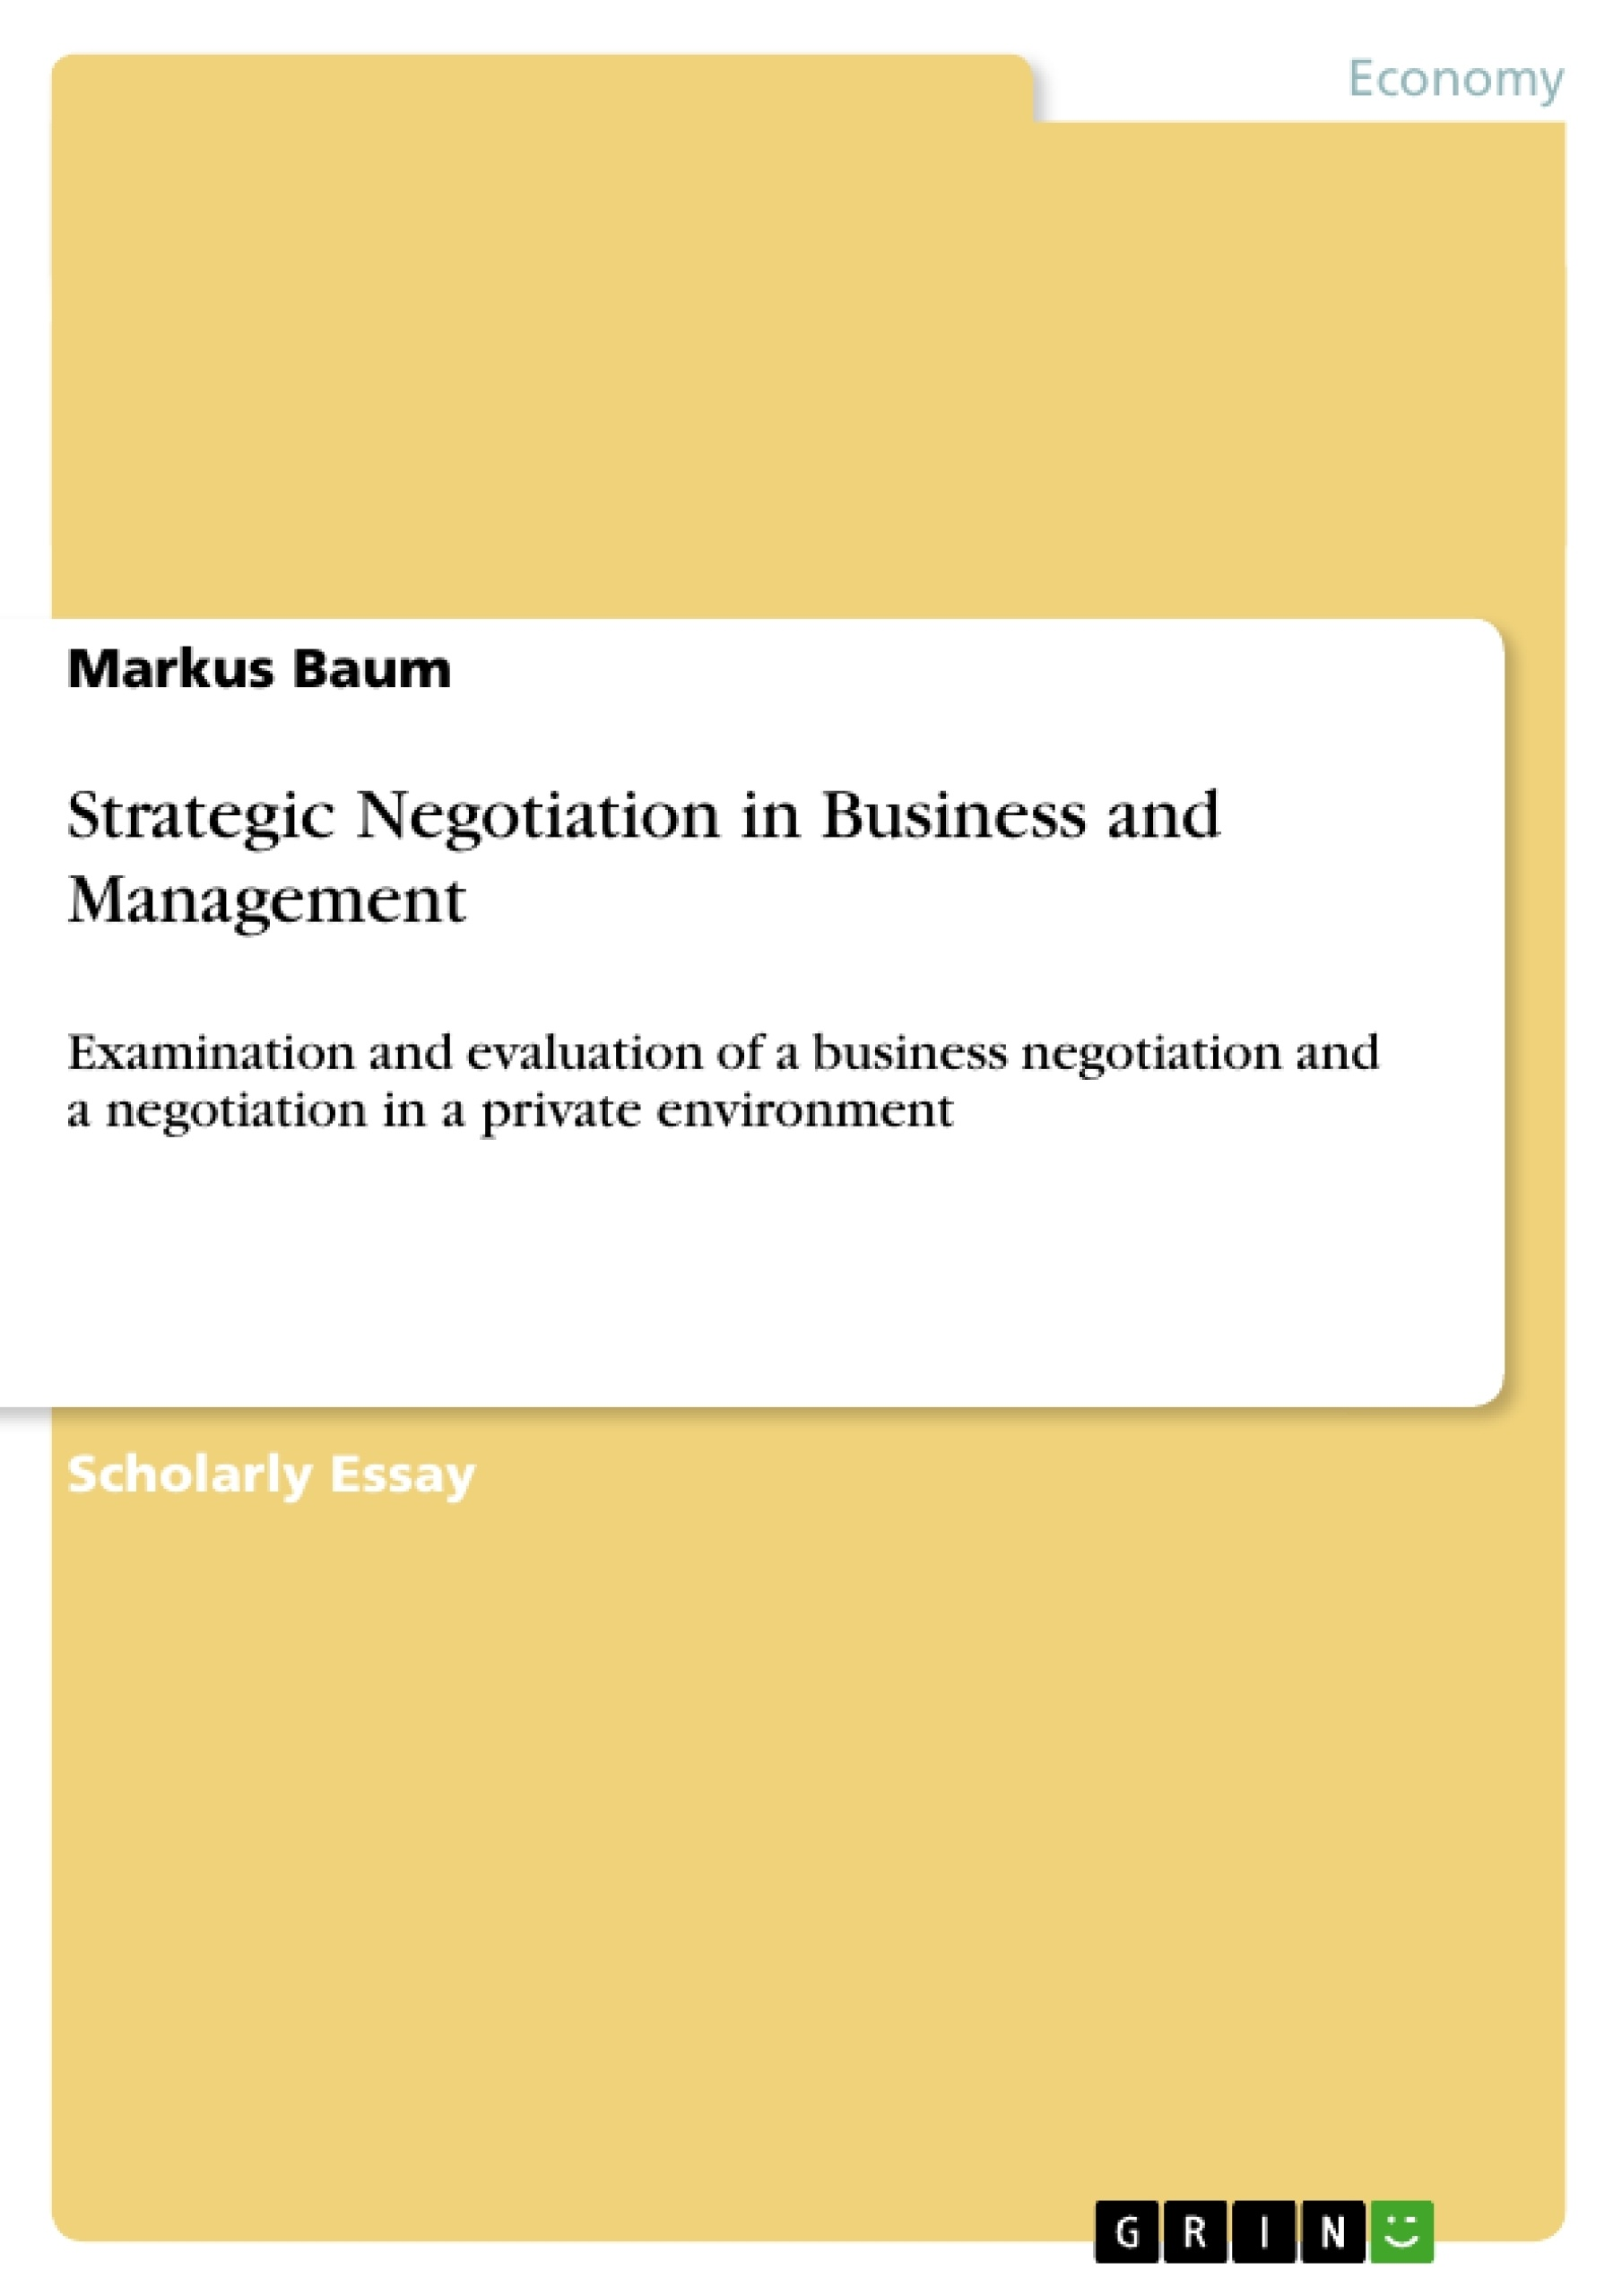 Title: Strategic Negotiation in Business and Management